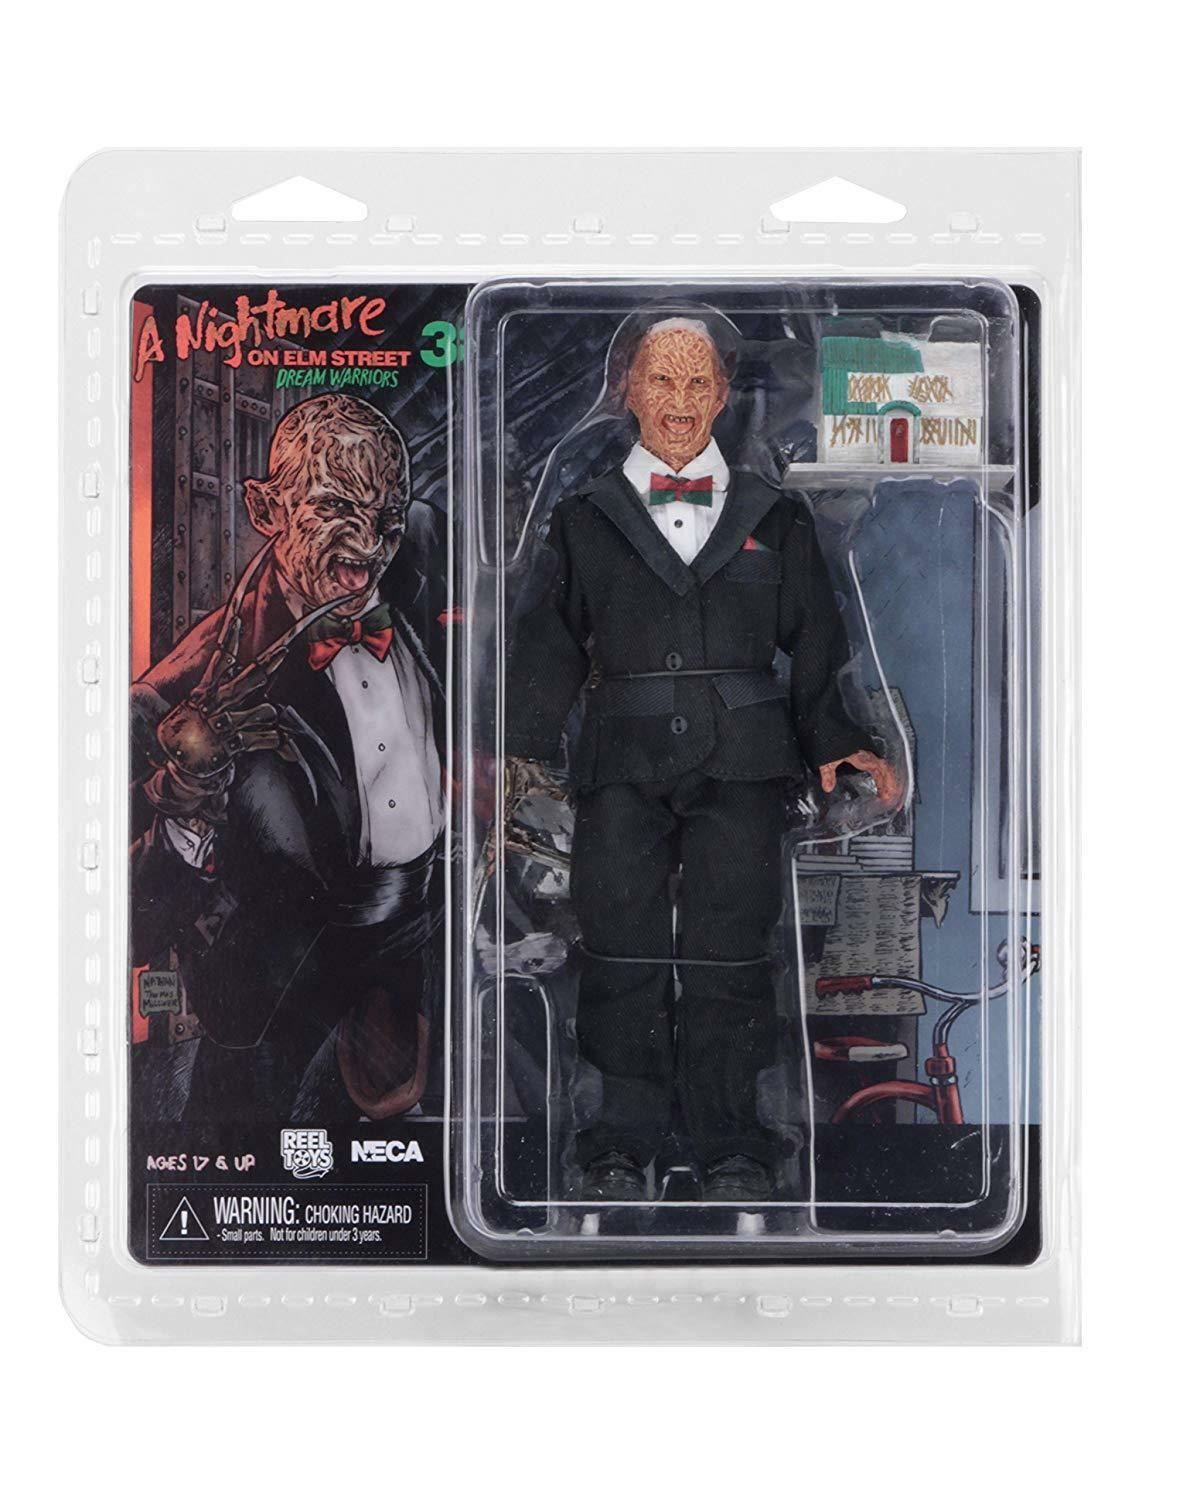 "NECA - Nightmare on Elm Street Part 3 - 8"" Clothed Action Figure - Tuxedo Freddy"